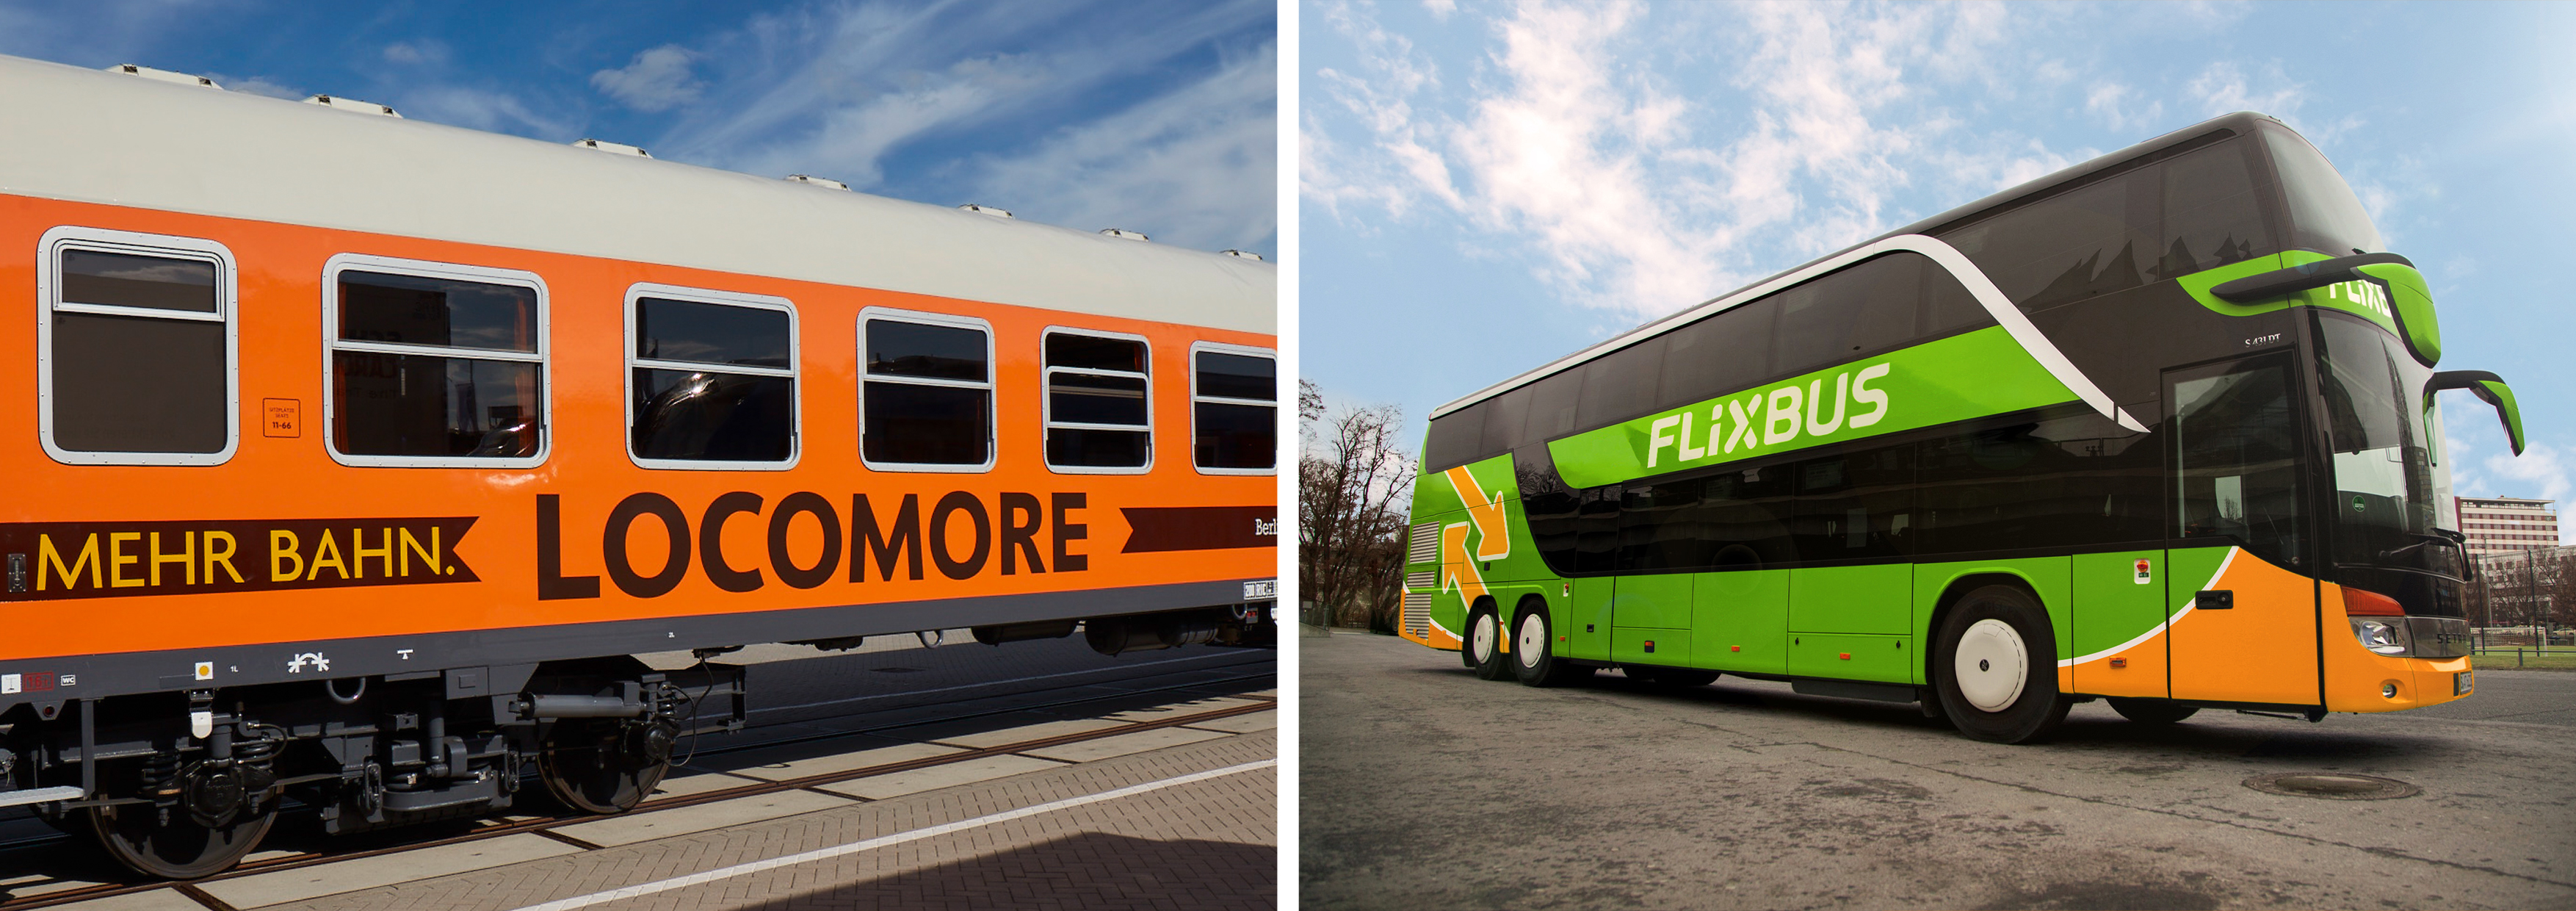 Flixbus reprend Locomore